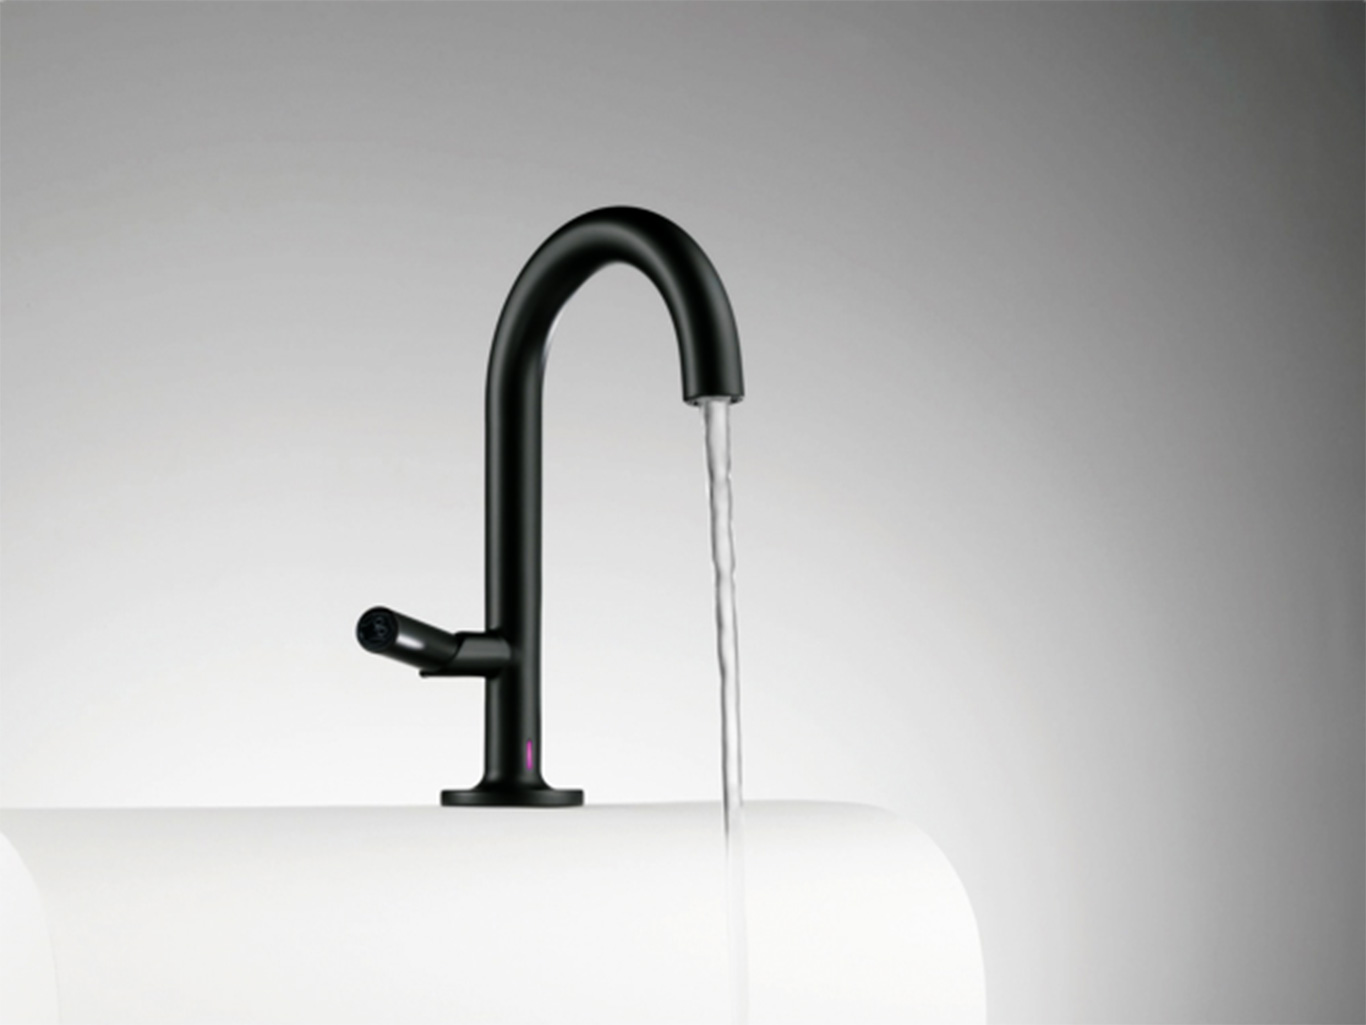 touch activated faucet faucet ratings brizo kitchen faucets brizo faucets high end bathroom sink faucets black kitchen faucets pull out spray touch sensor kitchen faucet touch bathroom fauce